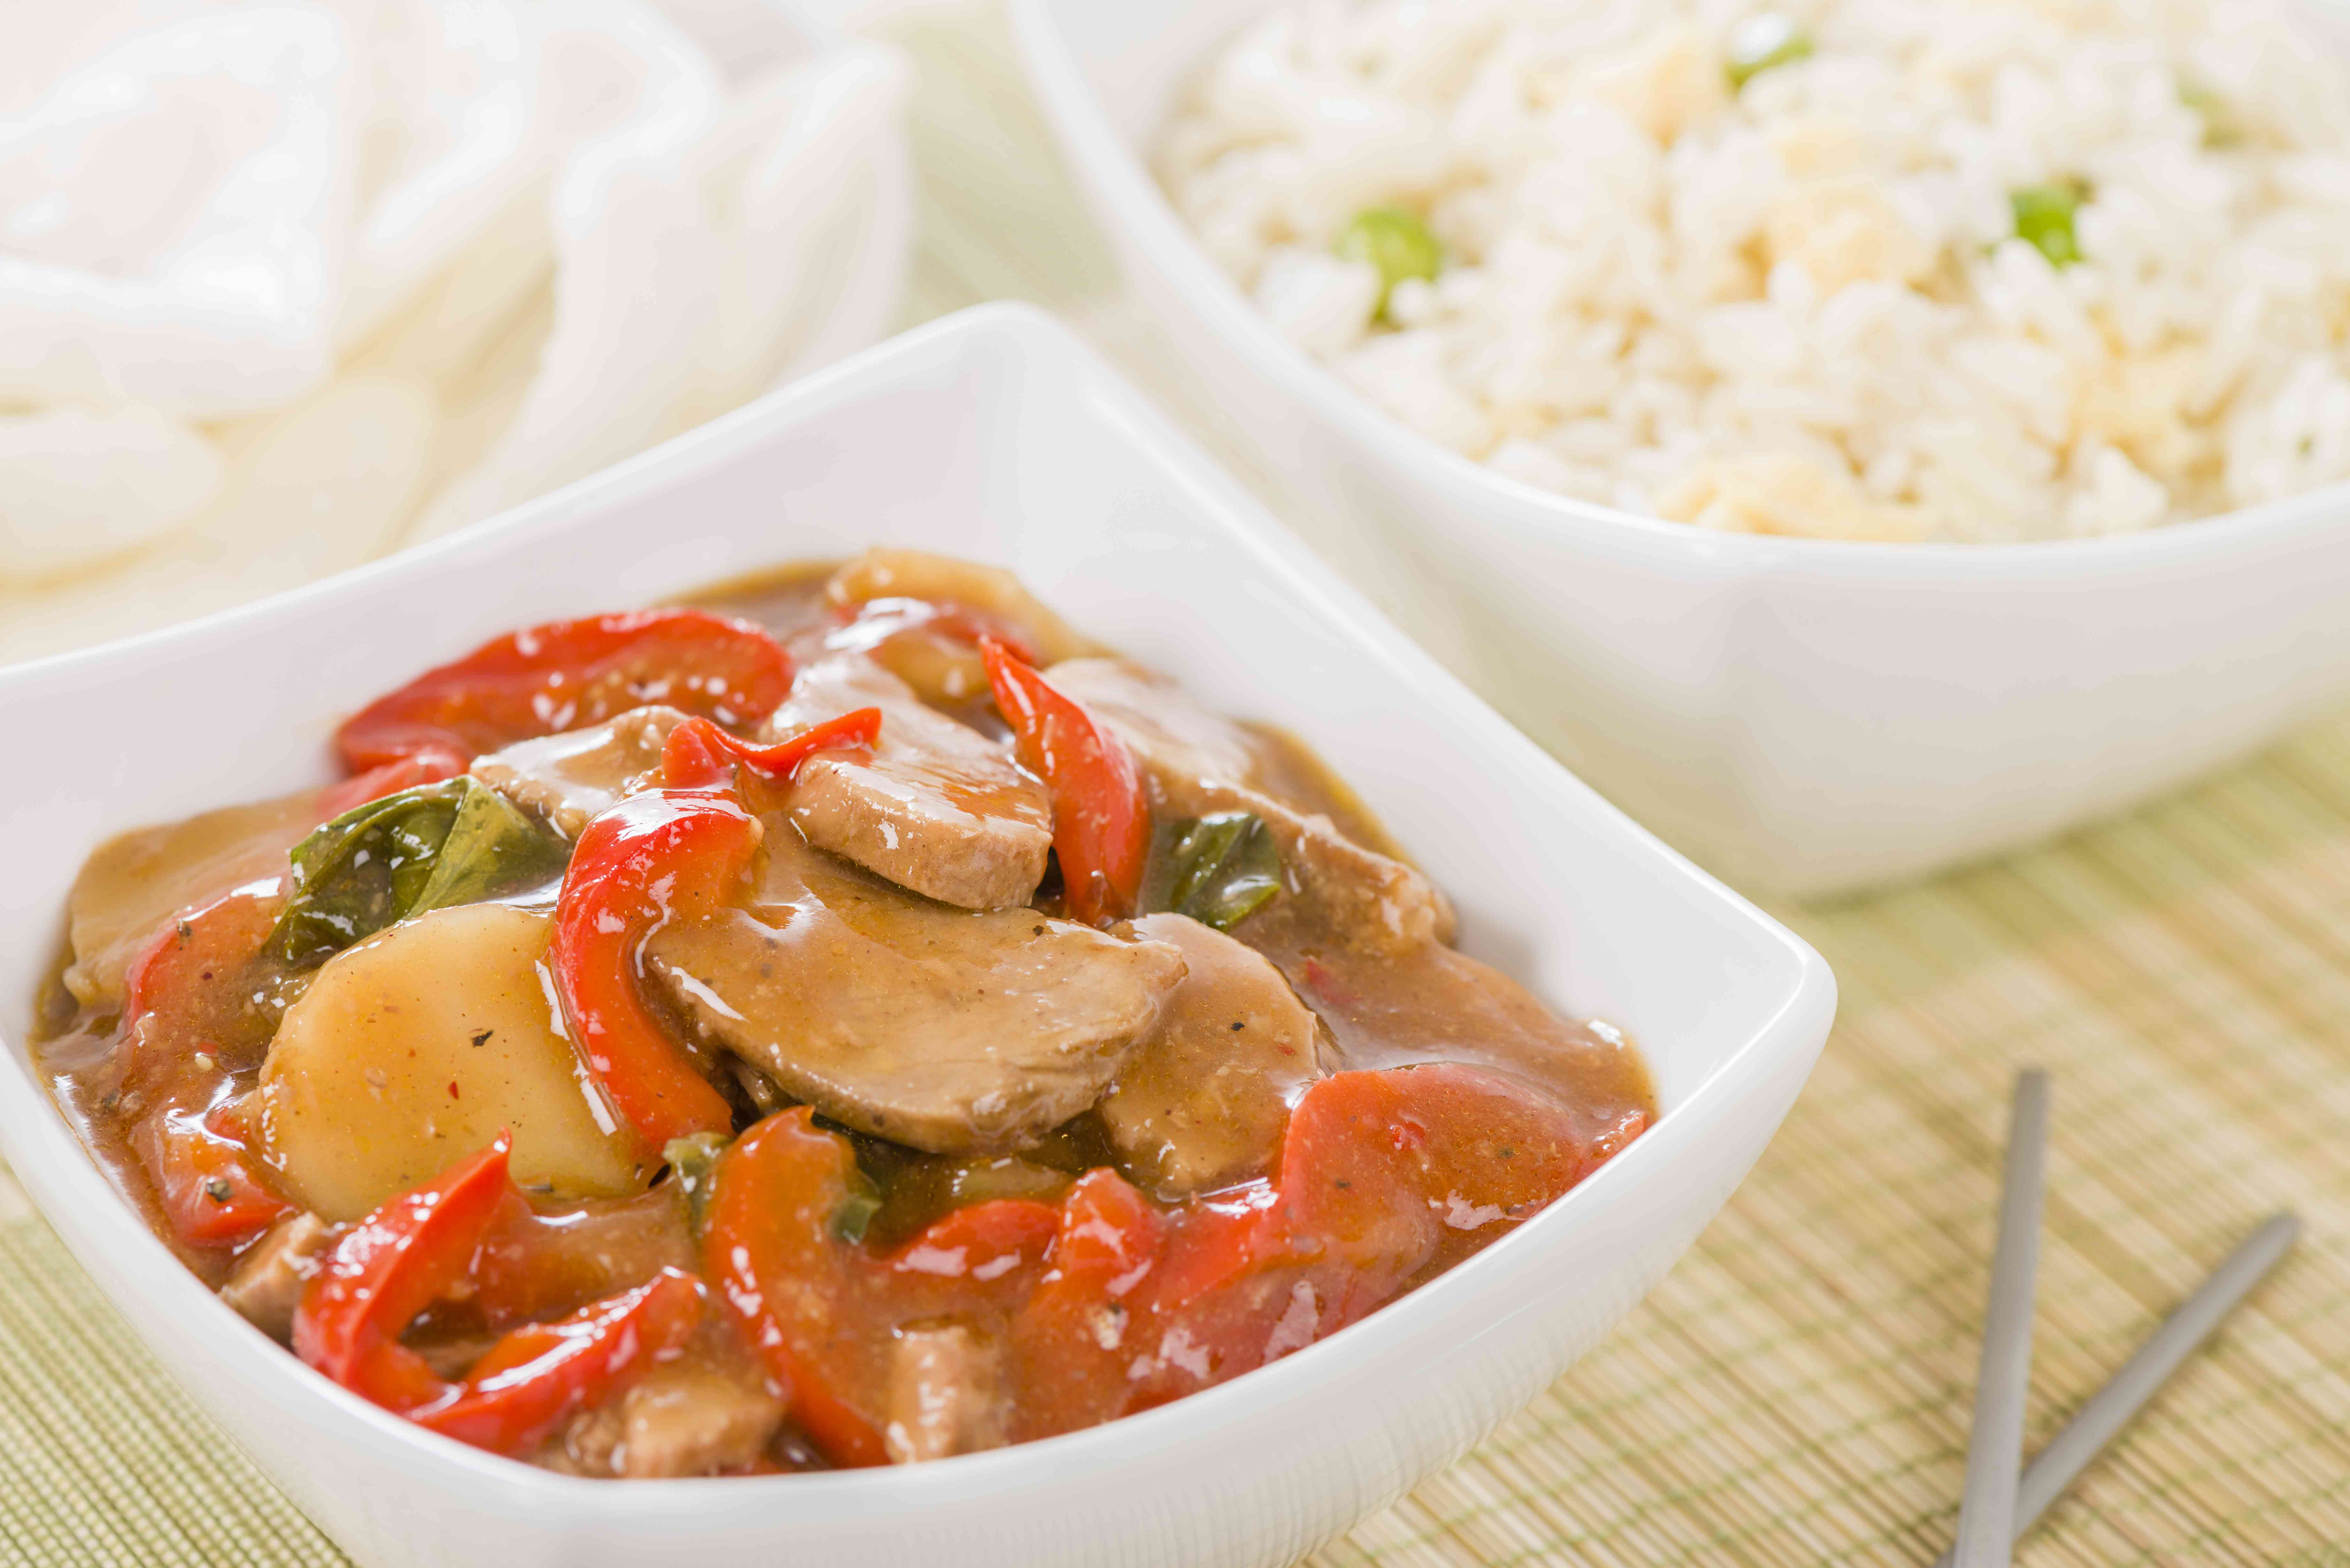 Chinese Pork With Red Peppers